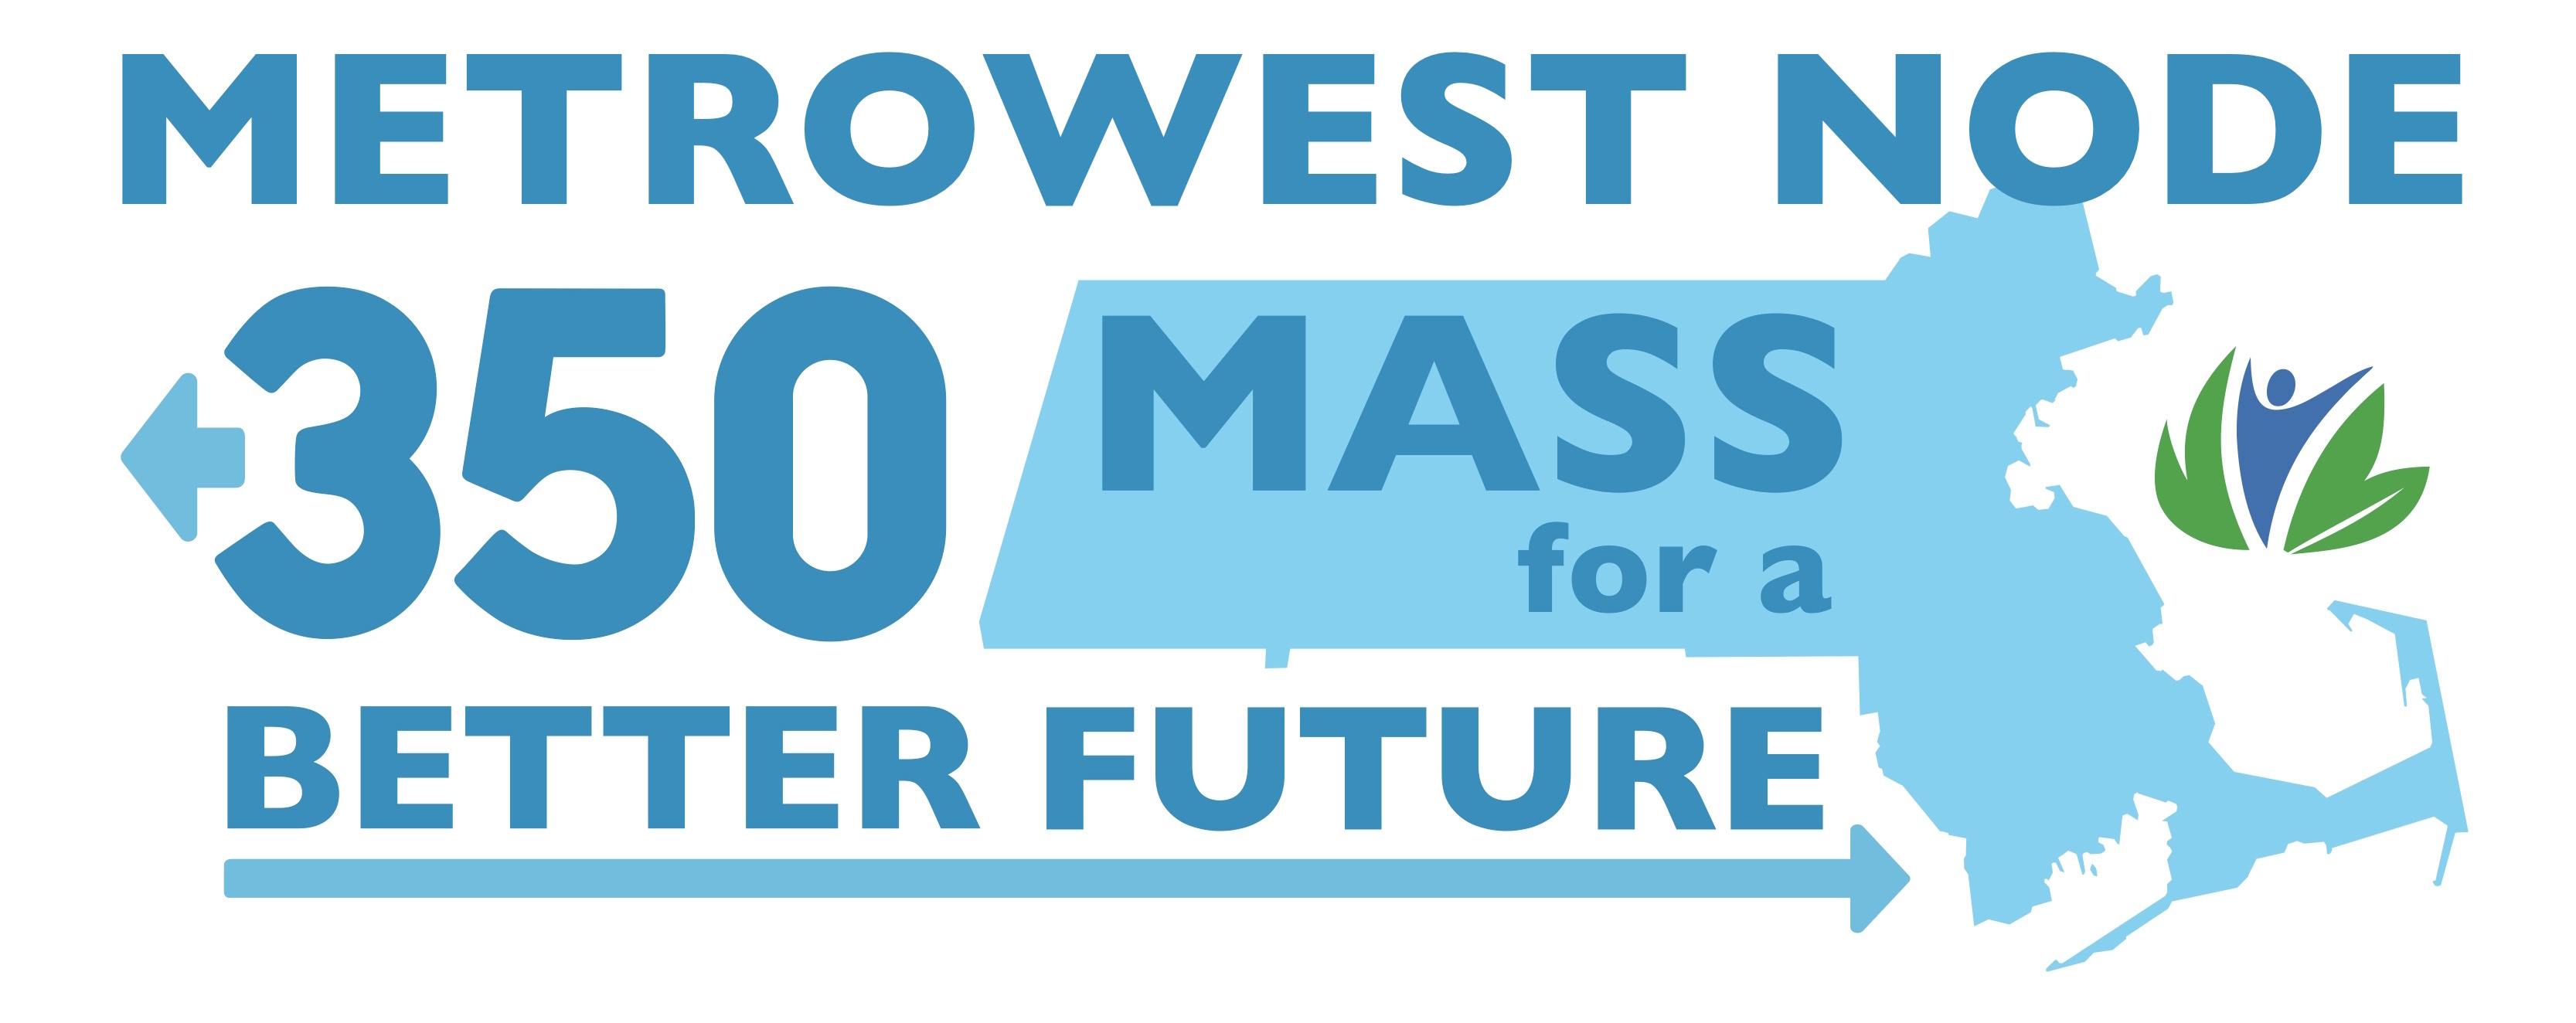 350 Massachusetts: MetroWest Node